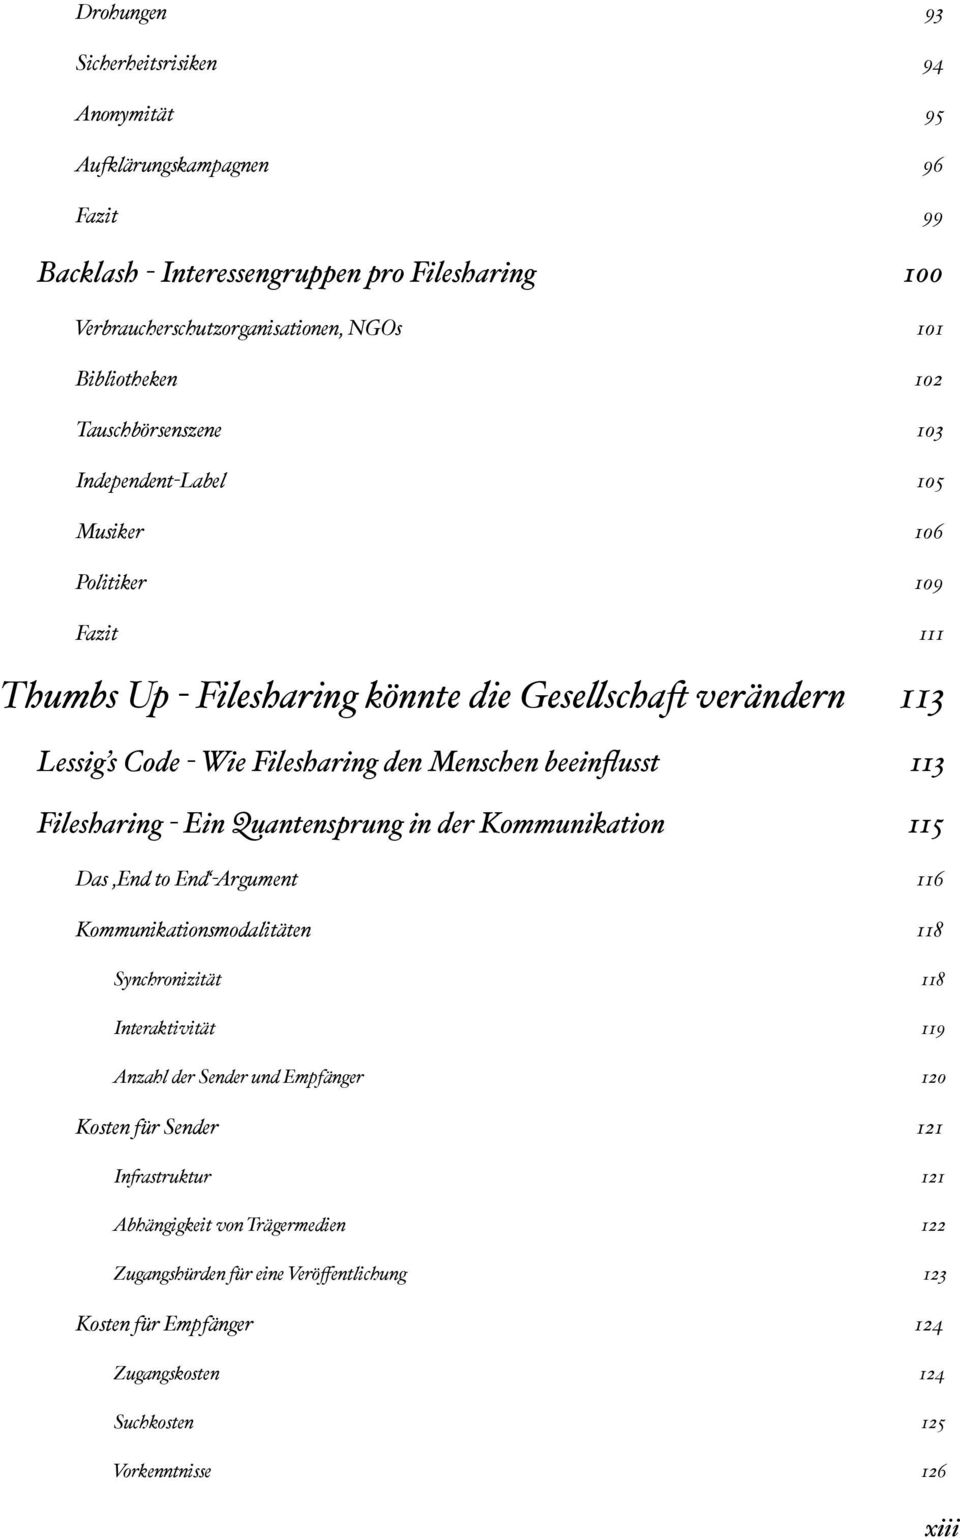 schaft verändern 113 Lessig s Code - Wie Filesharing den Menschen beeinflusst 113 Filesharing - Ein Quantensprung in der Kommunikation 115 Das End to End -Argument 116 Kommunikationsmodalitäten